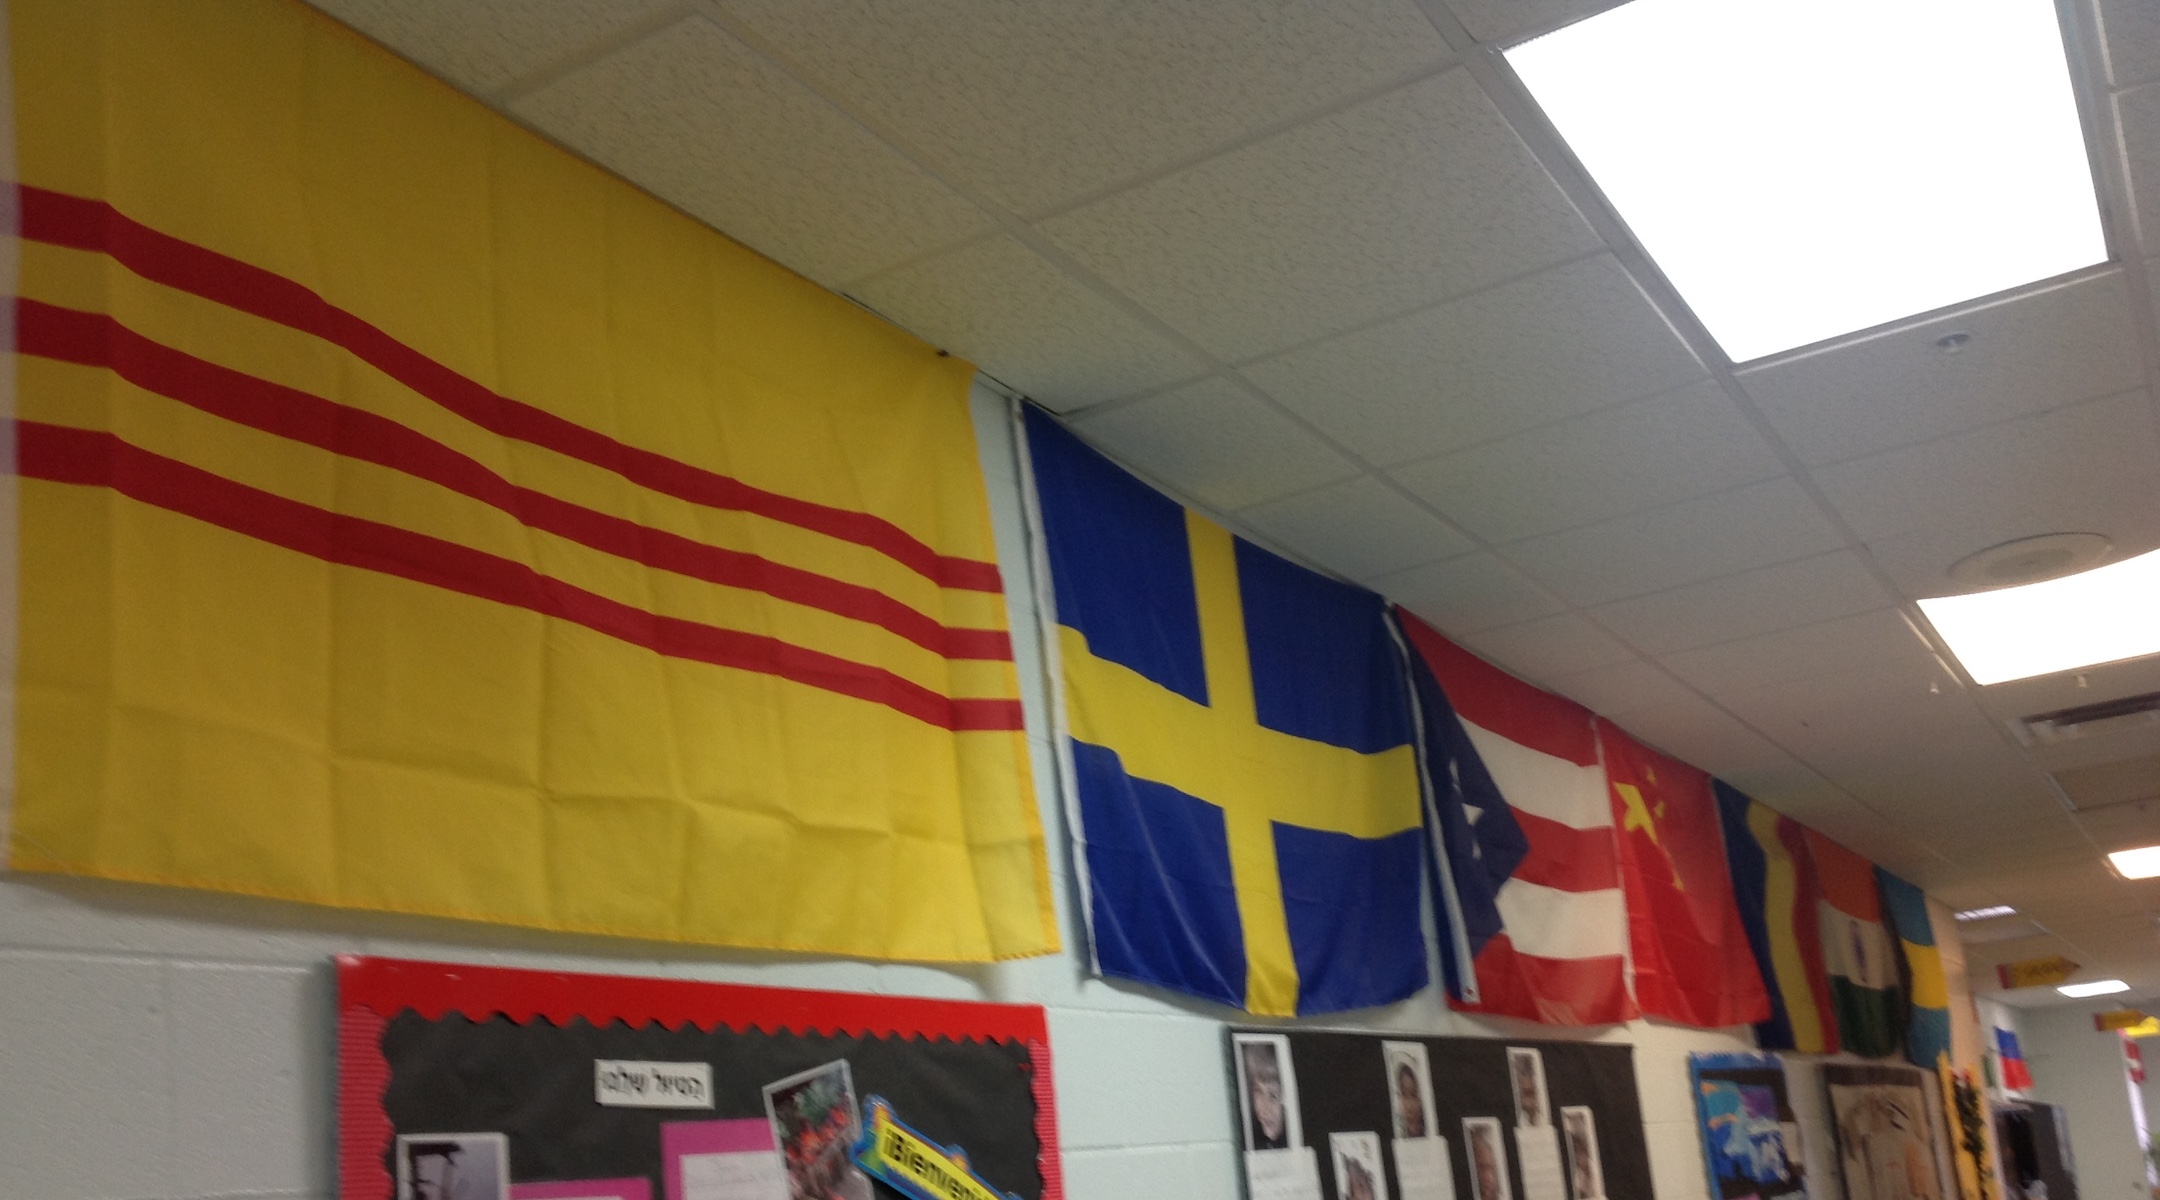 The school has a hallway of flags representing the 40 countries its students' families hail from. (Ben Sales)